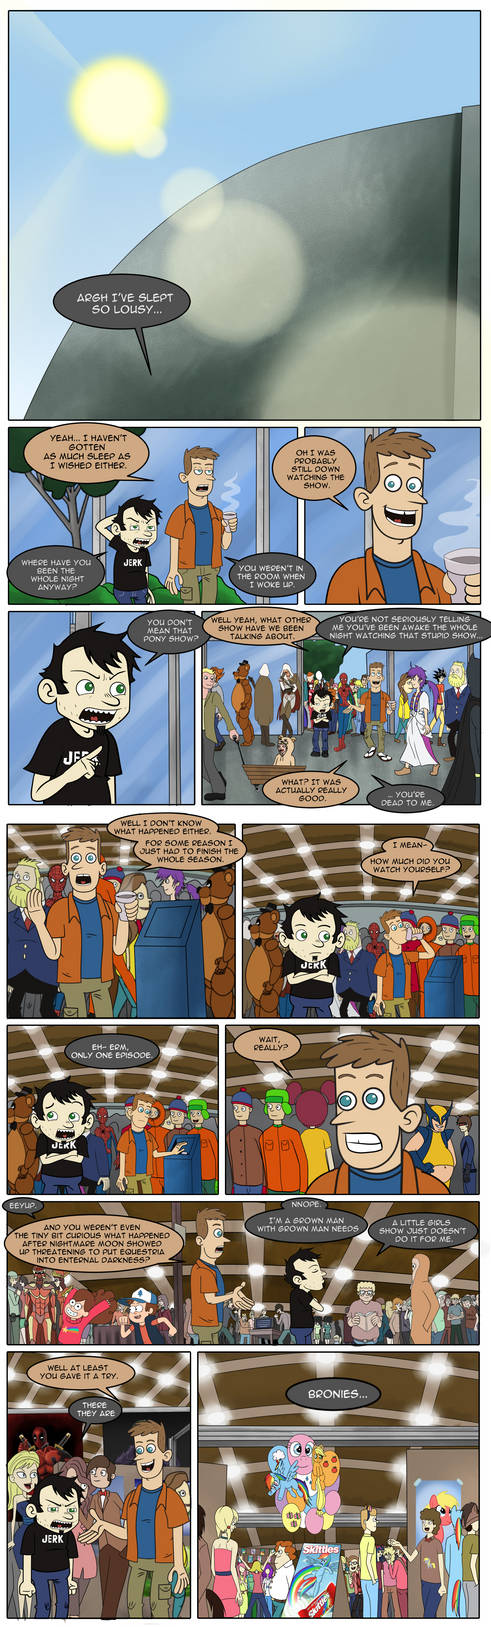 Dan vs Bronies Ch 2 - Assimilation Pt 1